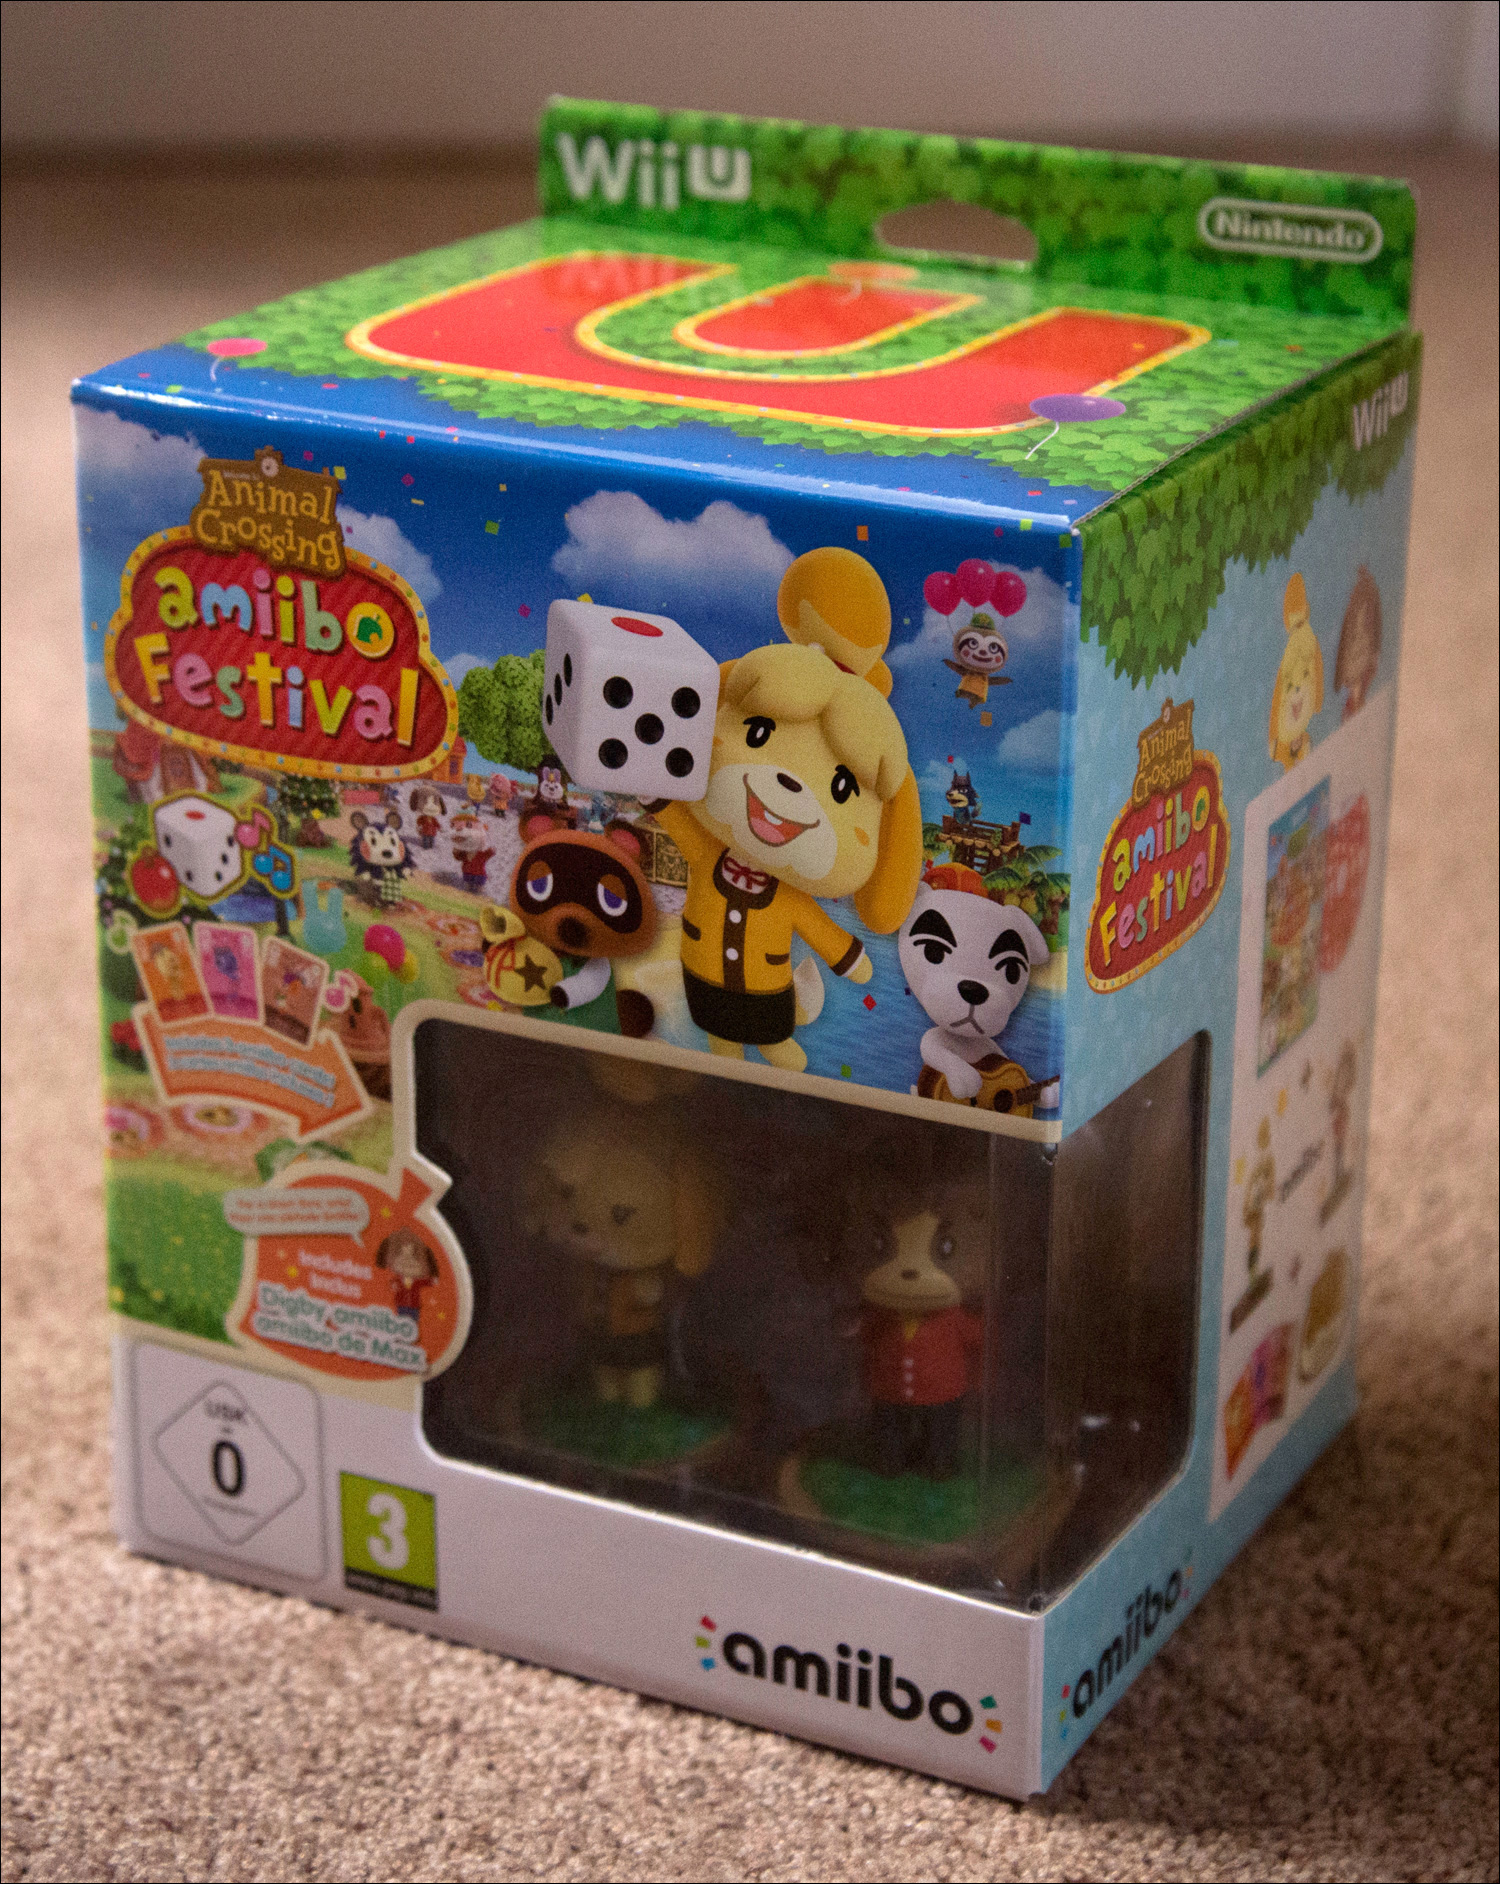 Animal-Crossing-Amiibo-Festival-Bundle